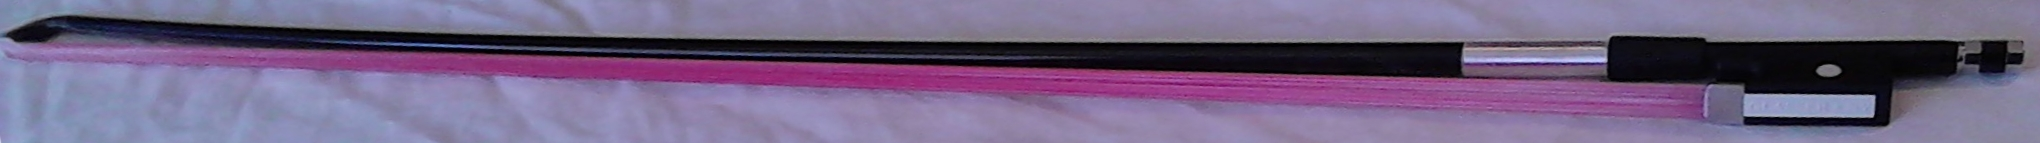 Glasser Pink Hair Black Stick